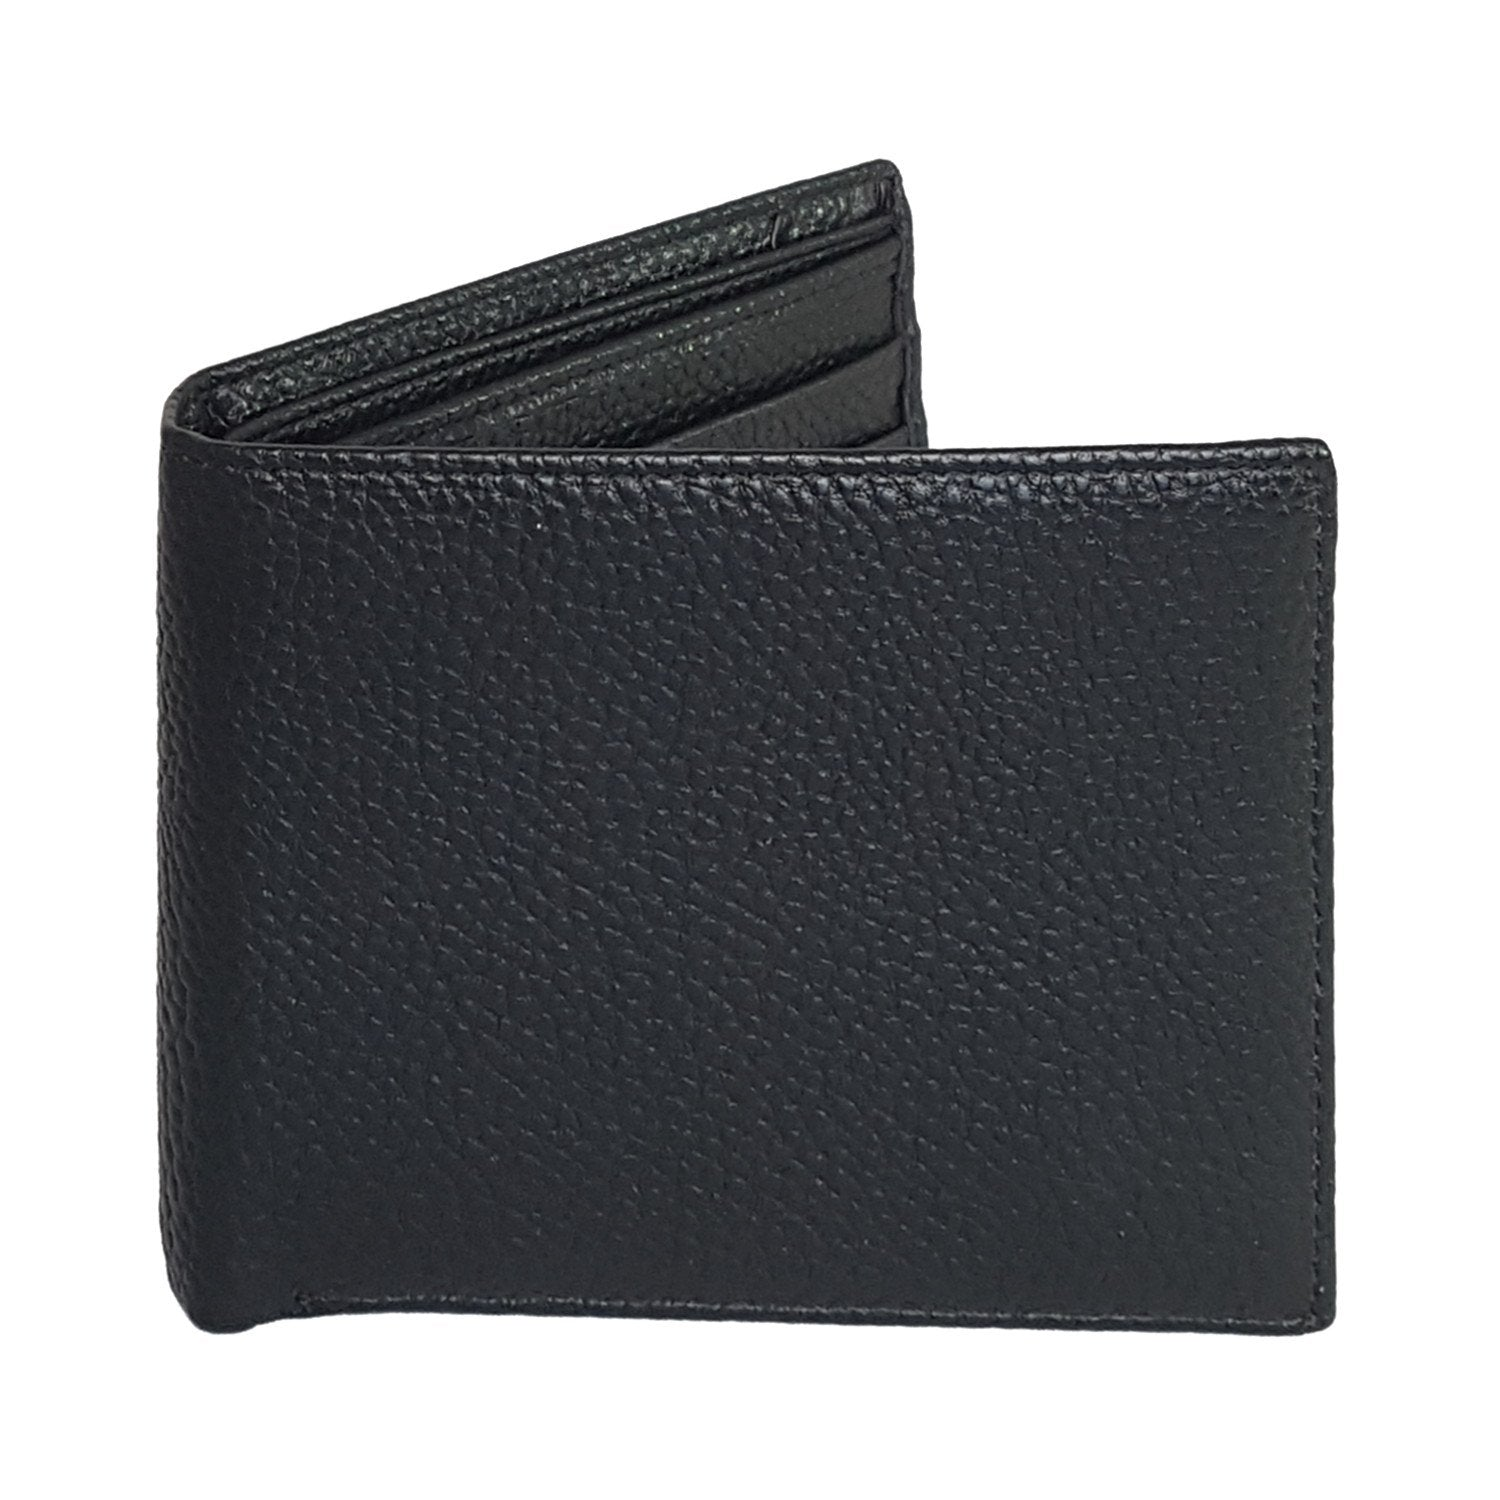 Tim And Ted Vegan Men's Wallets, Guilt Free and Vegetarian Approved